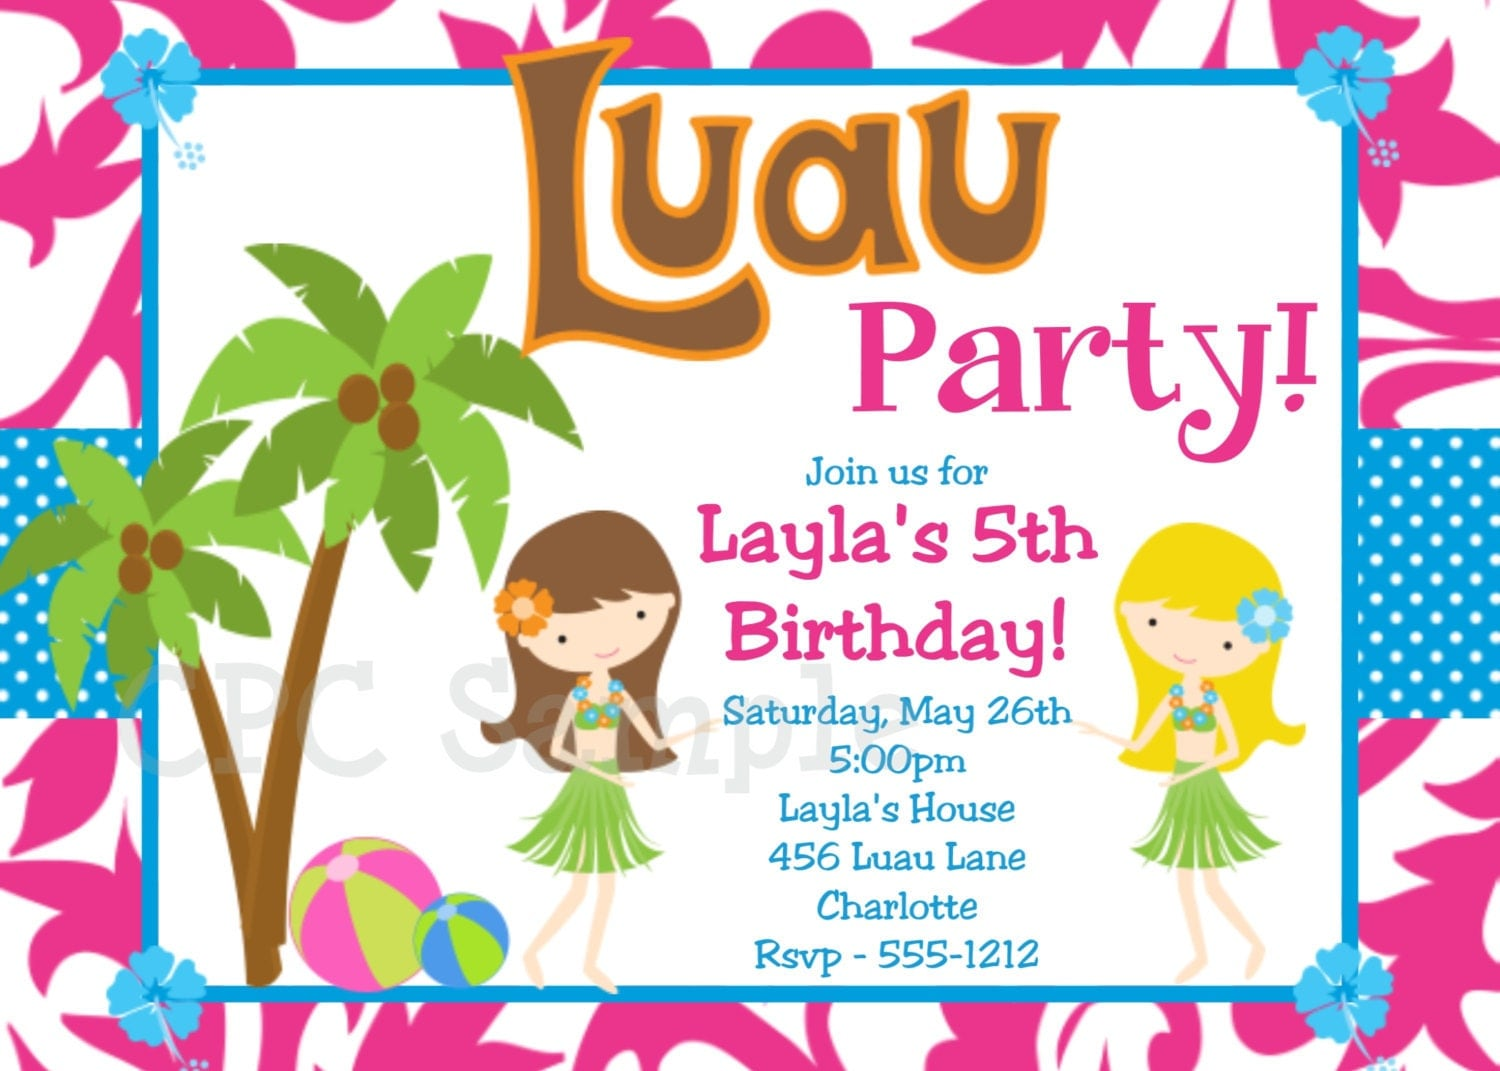 Luau Birthday Party Invitations can inspire you to create best invitation template